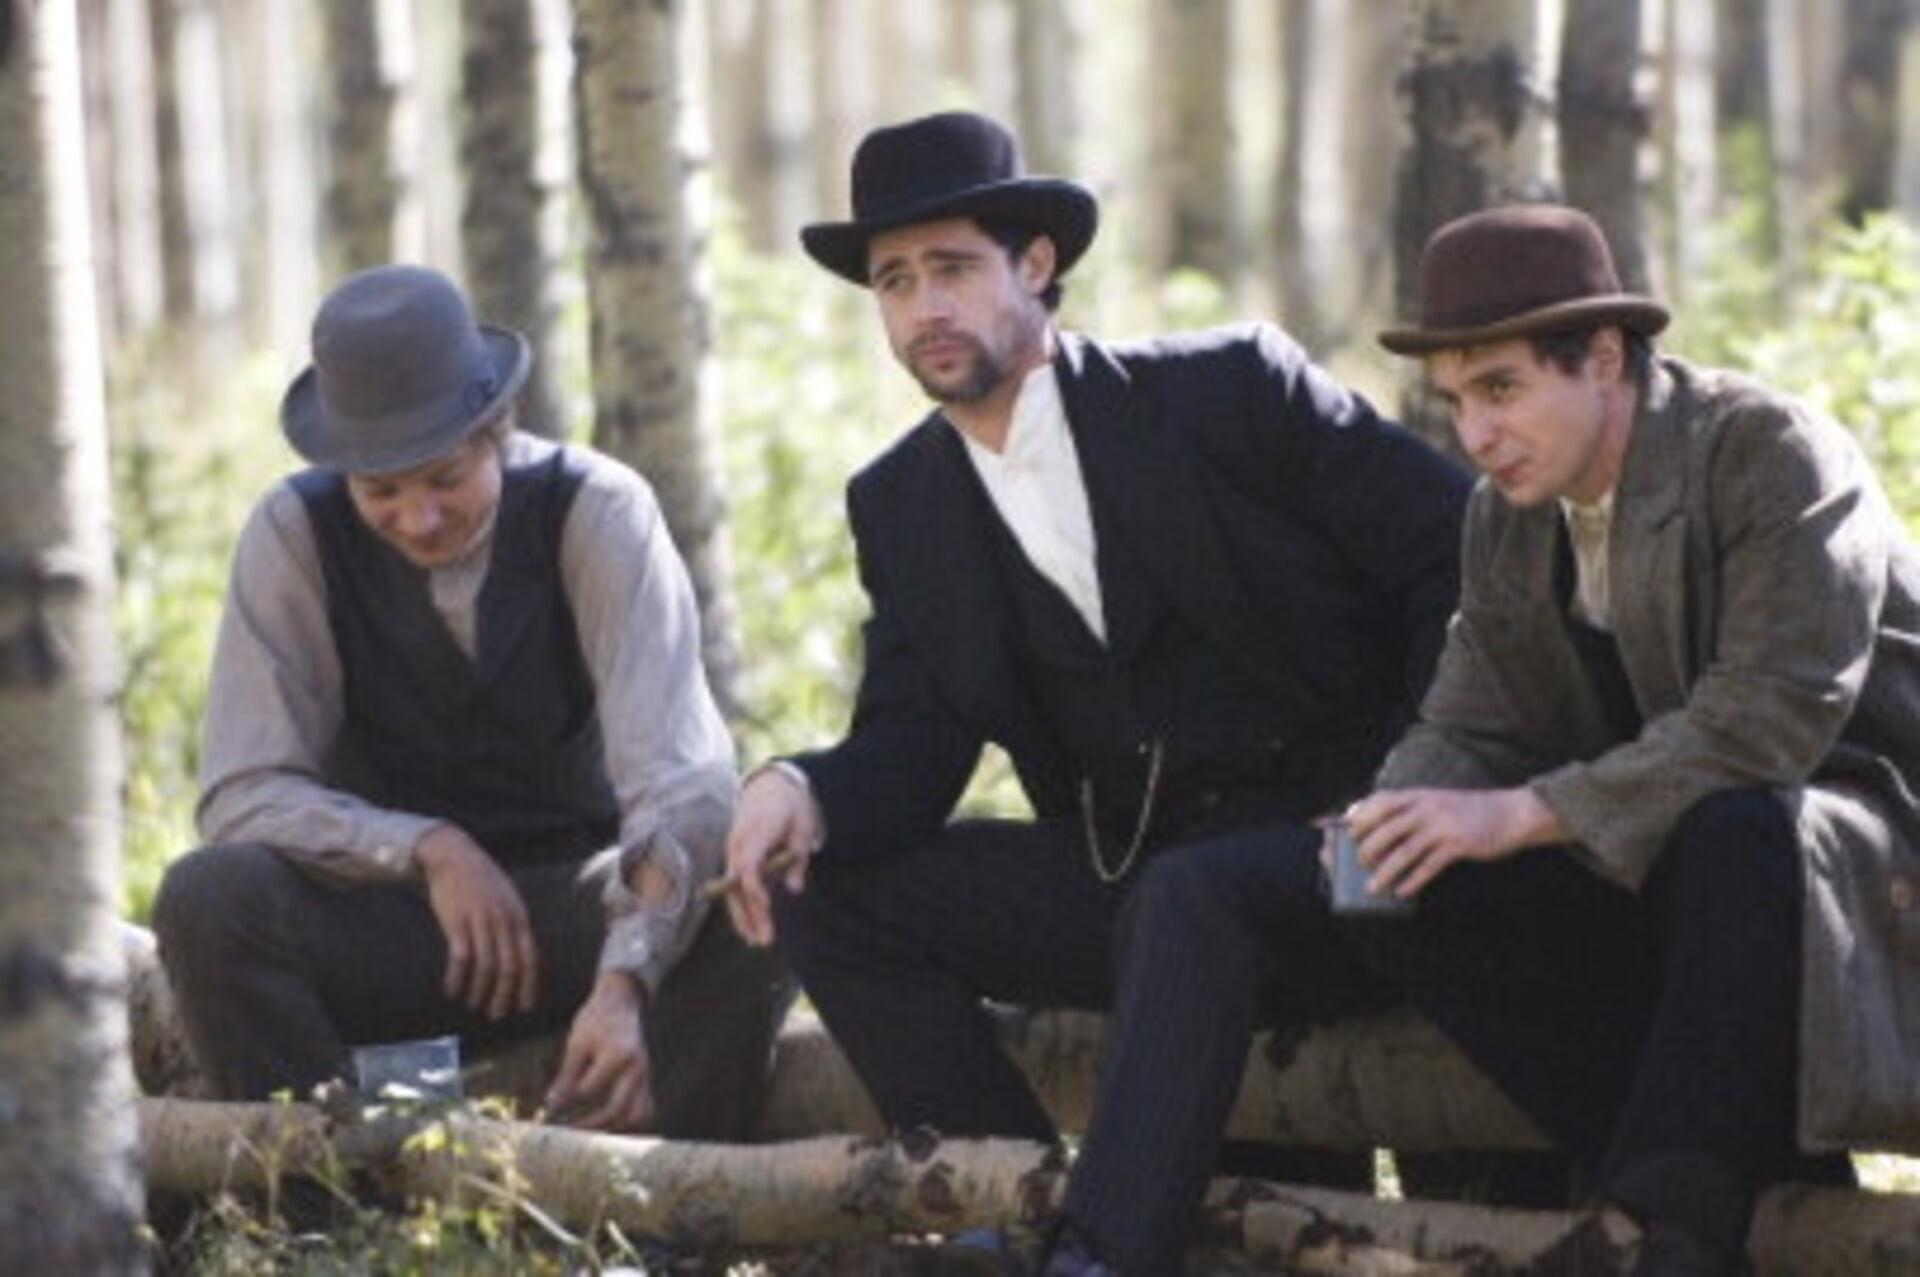 The Assassination of Jesse James by the Coward Robert Ford - Image 16